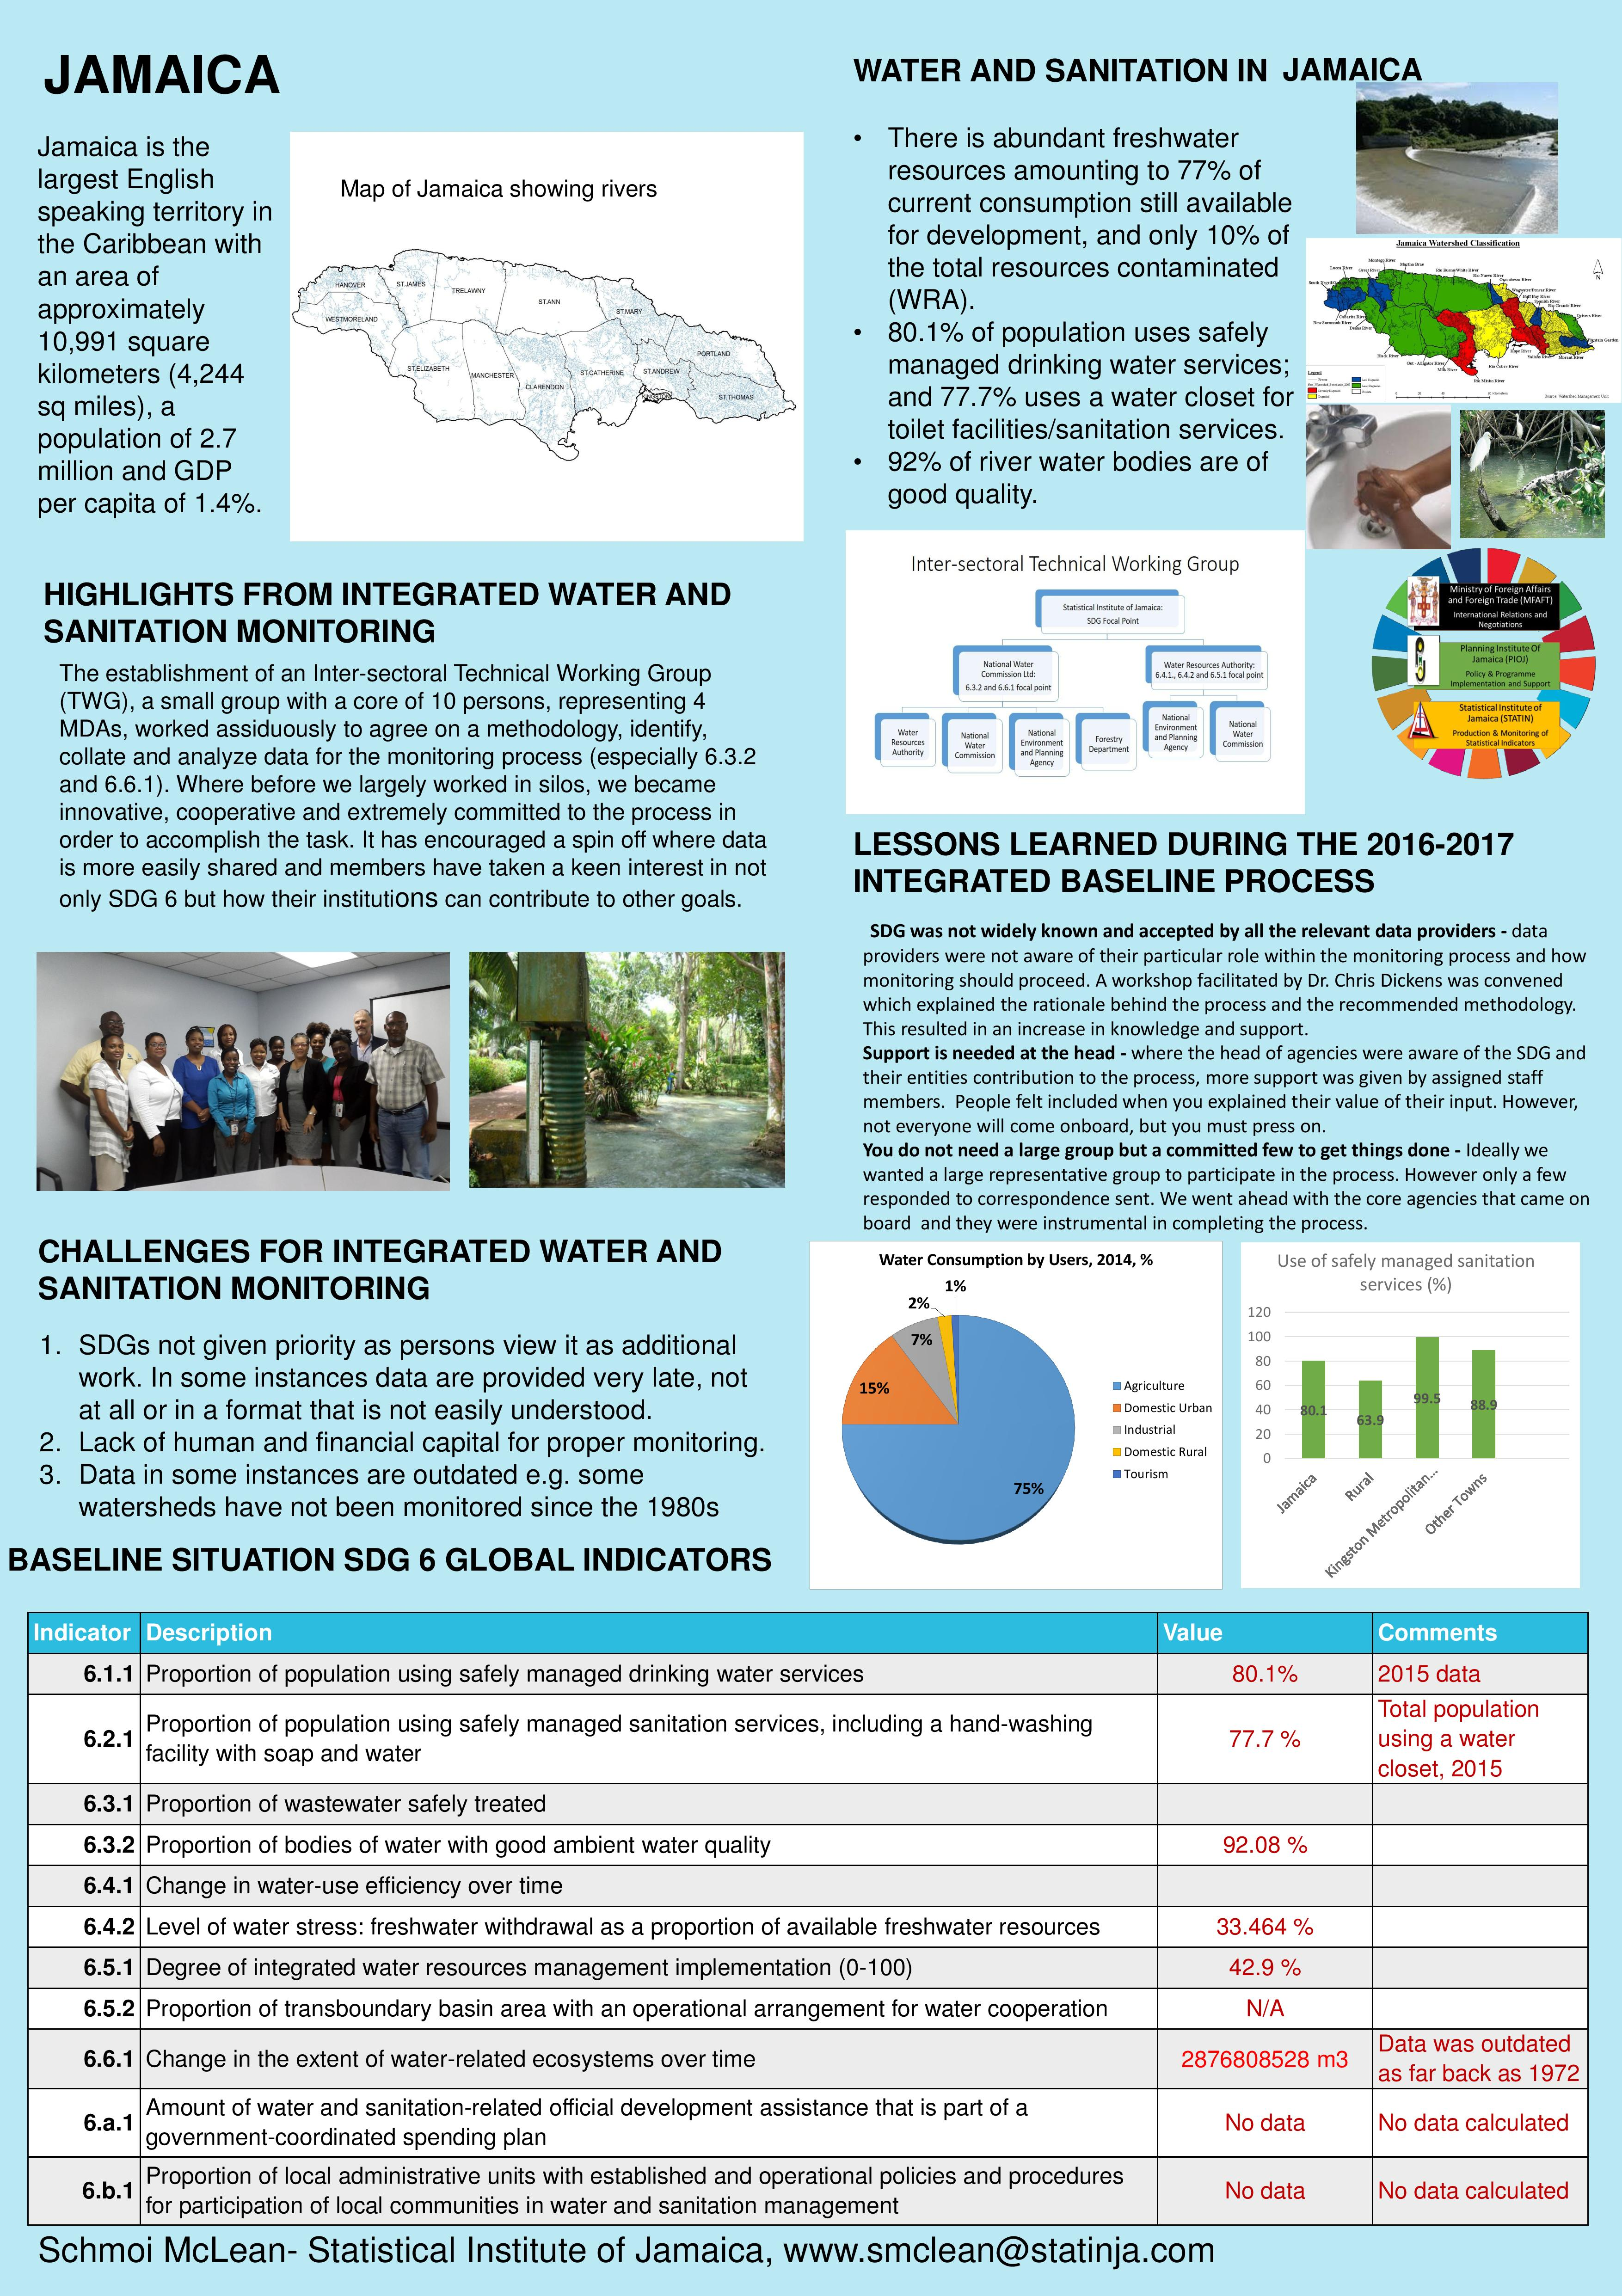 Water and saniation monitoring in Jamaica at a glance